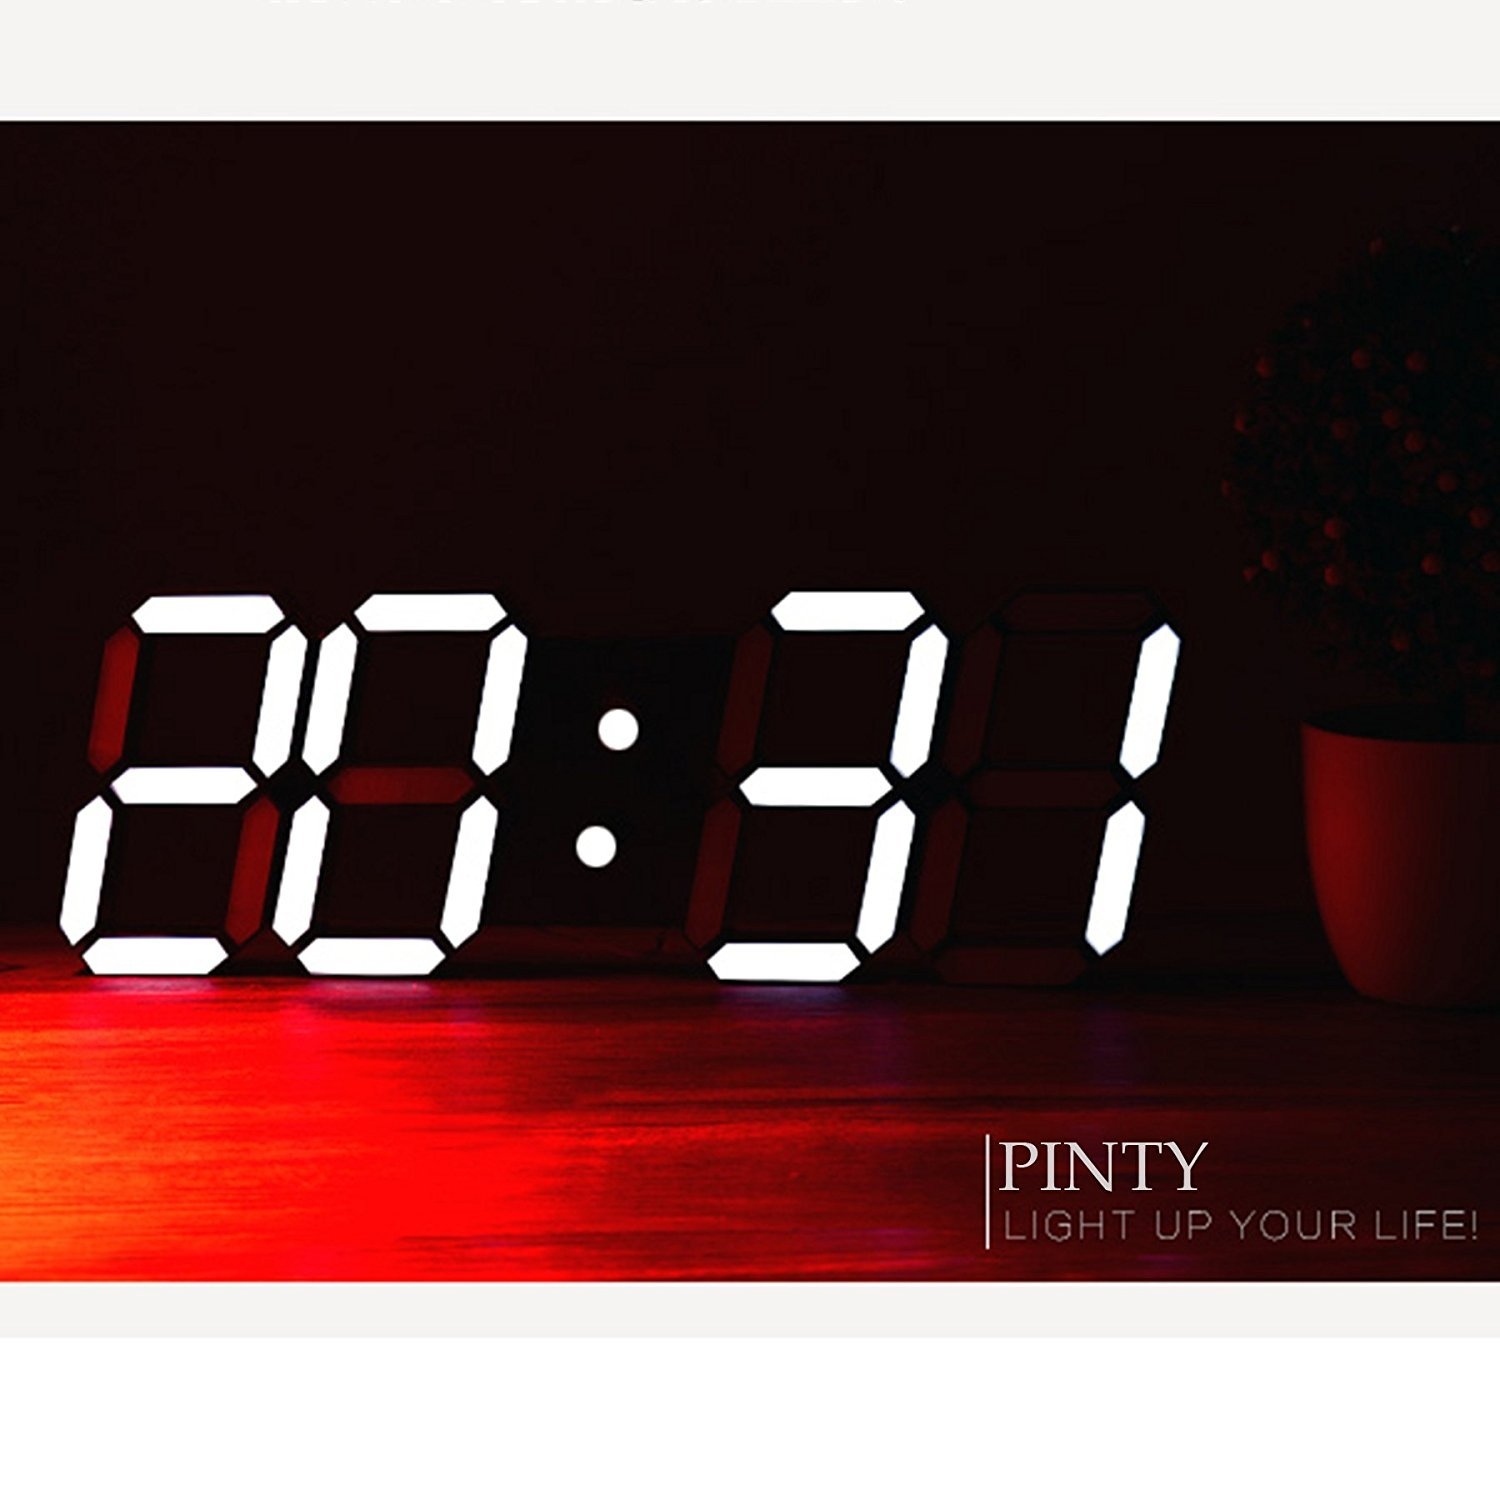 Amazon pinty multi functional remote control large led amazon pinty multi functional remote control large led digital wall clock with countdown timer temperature date black shell white digital home amipublicfo Choice Image